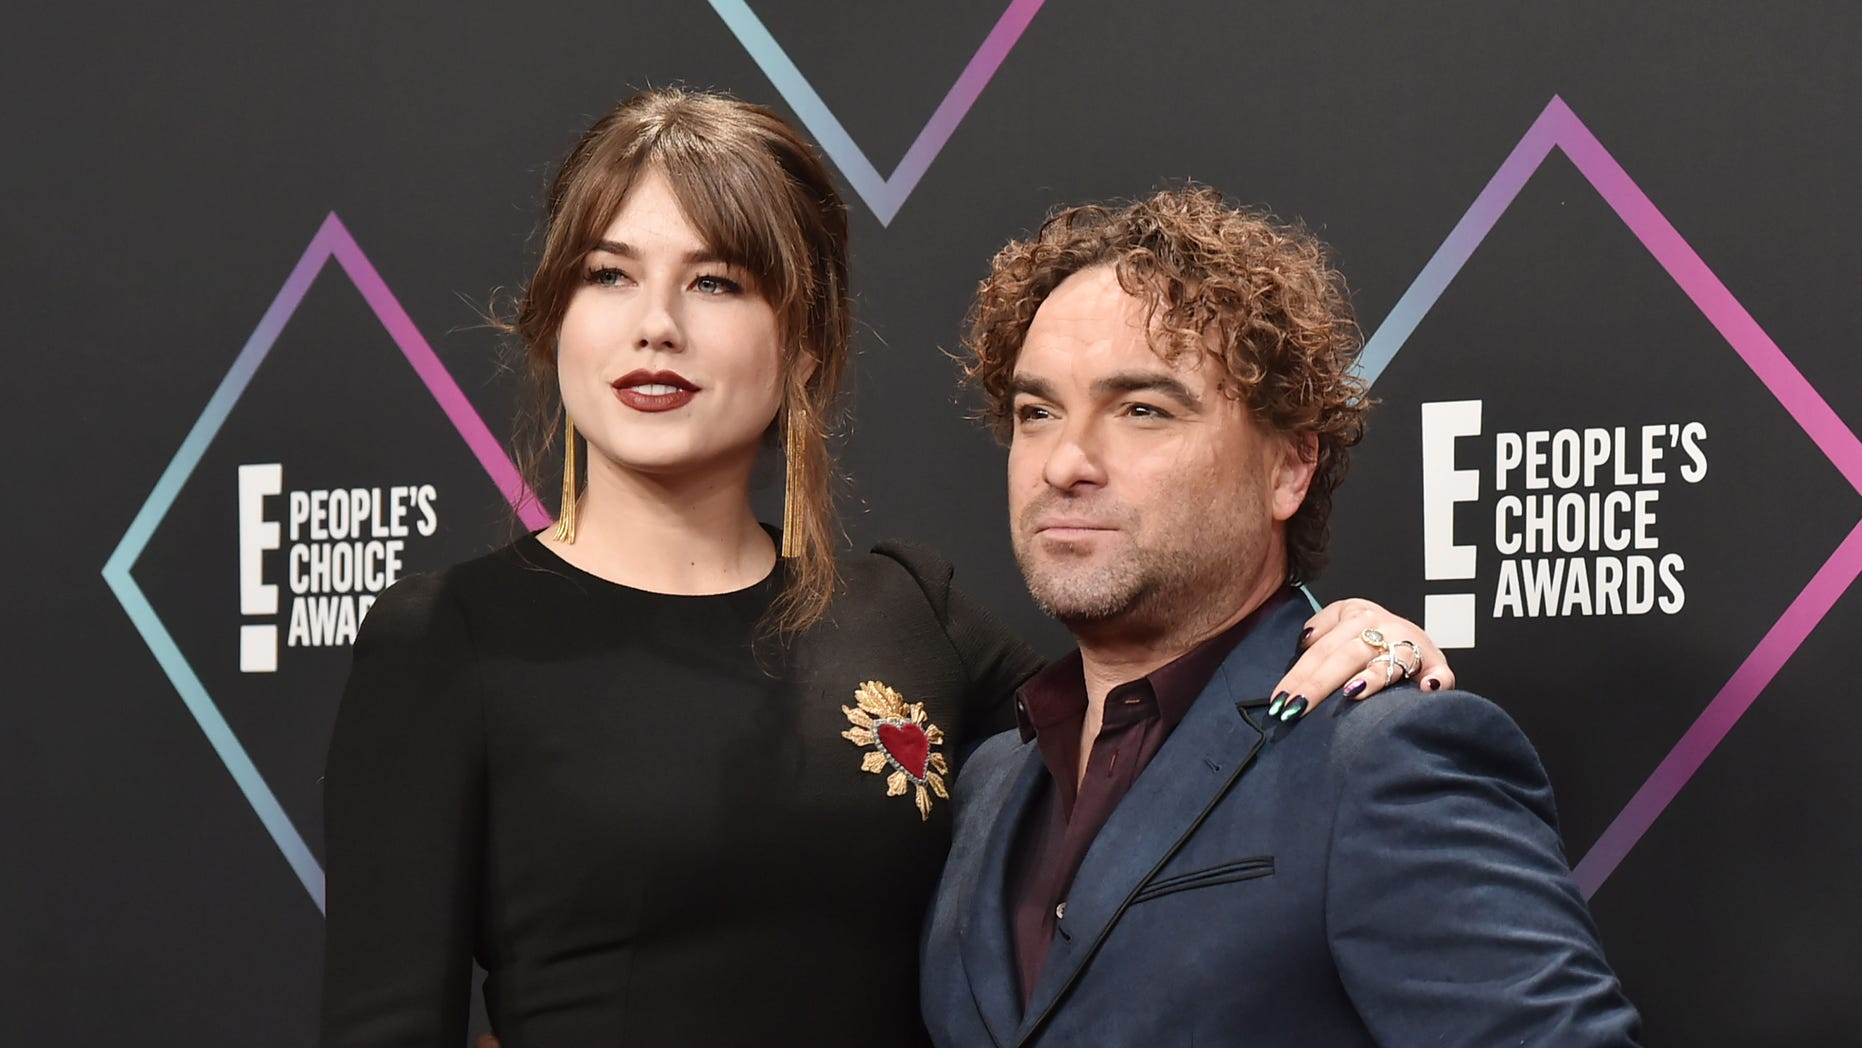 Alaina Meyer and Johnny Galecki arrive at E! People's Choice Awards at Barker Hangar on November 11, 2018 in Santa Monica, California.